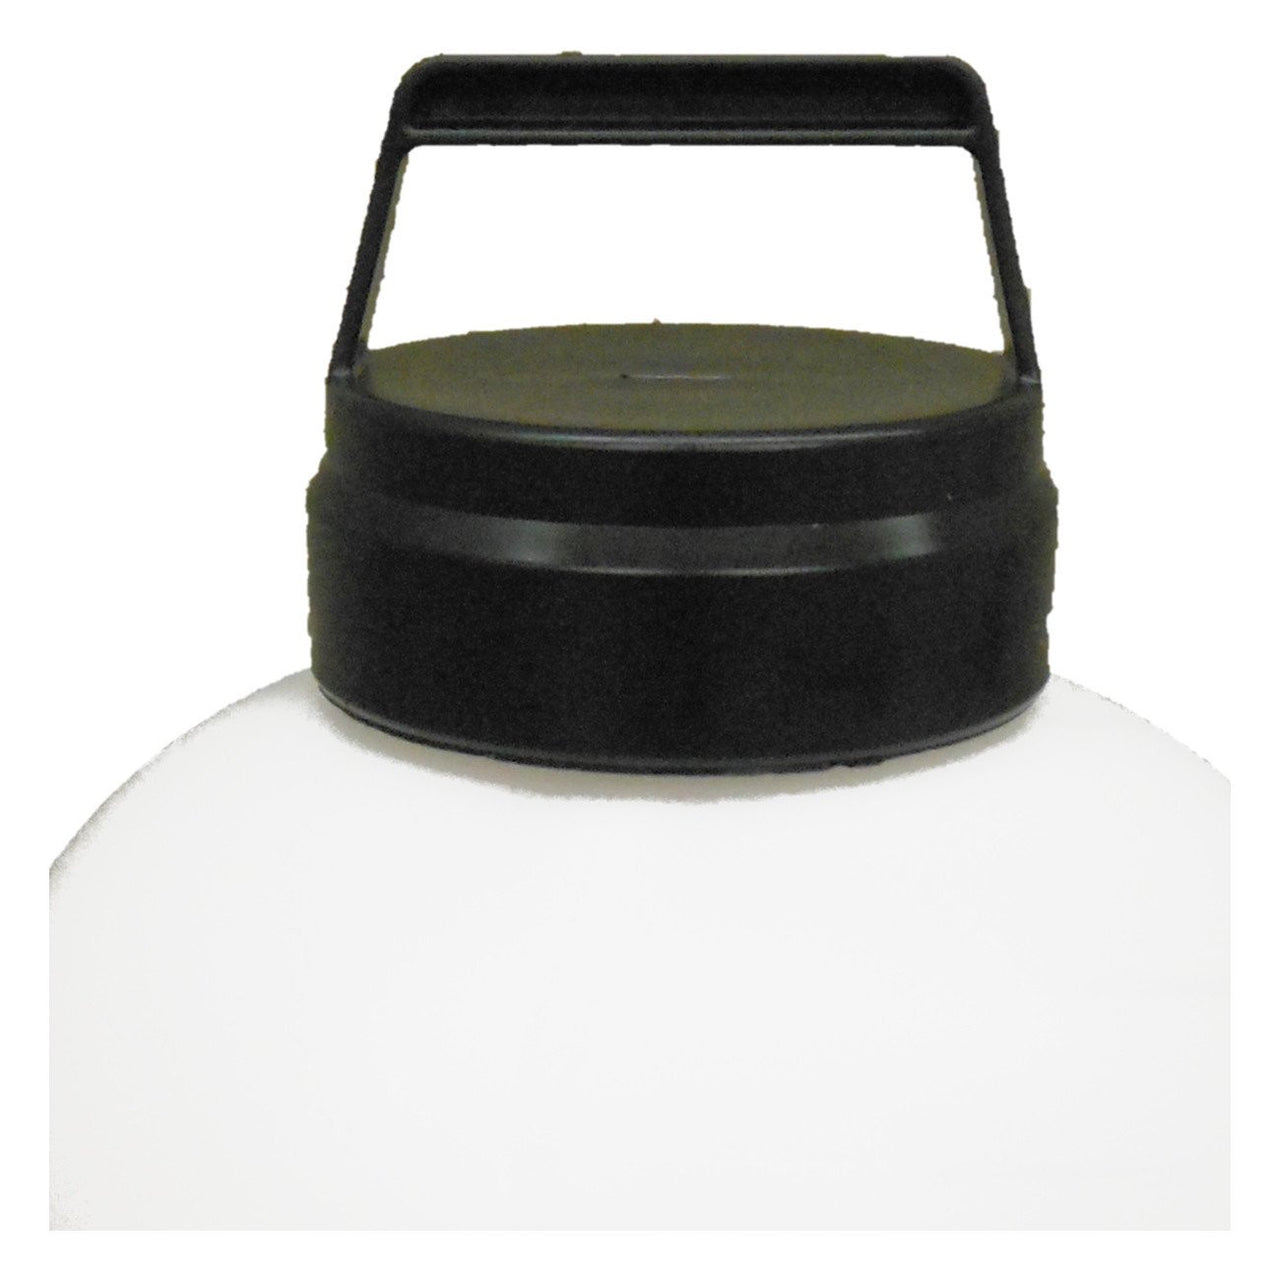 Millside Screw On Cap/handle For Top Fill Fountains - Poultry Waterers Plastic Millside - Canada